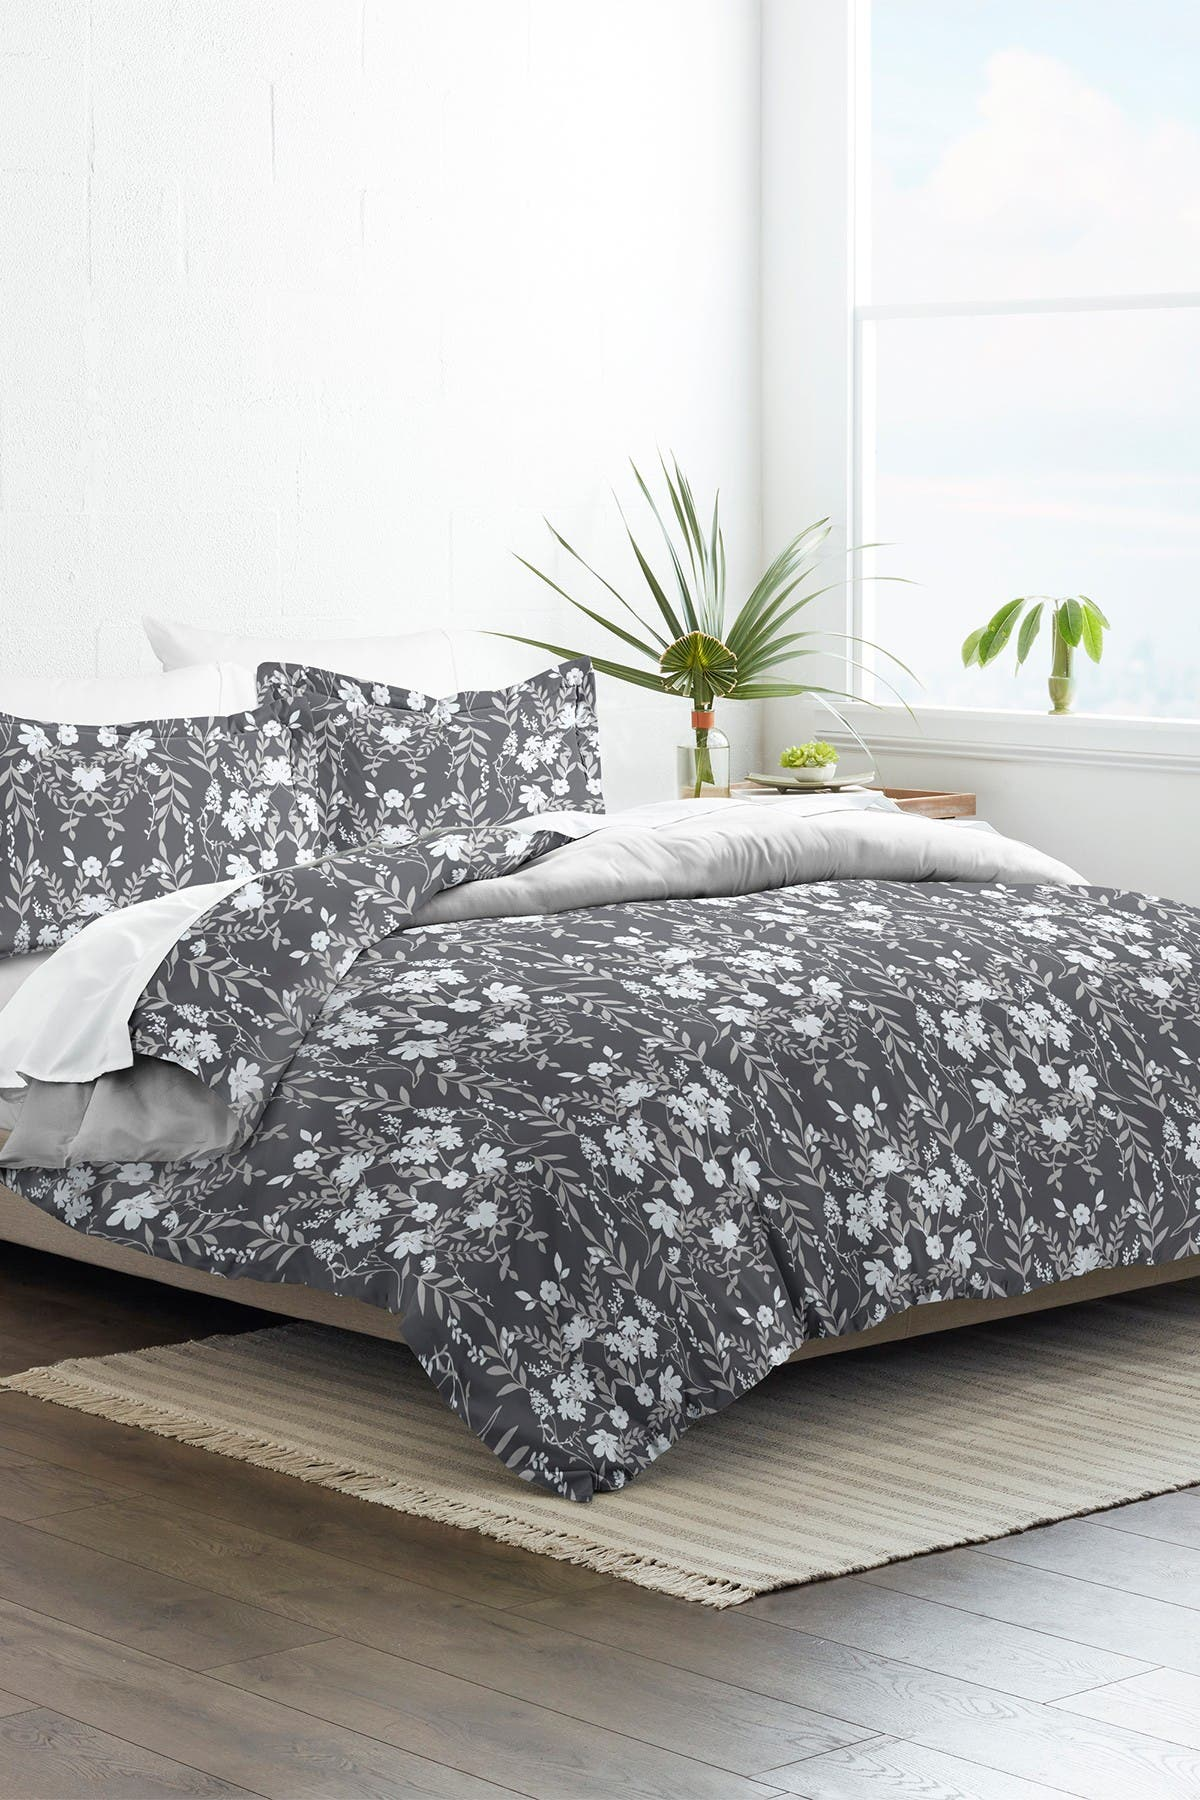 Image of IENJOY HOME Home Collection Premium Ultra Soft Secret Garden Pattern 3-Piece Twin/Twin Extra Long Reversible Duvet Cover Set - Black